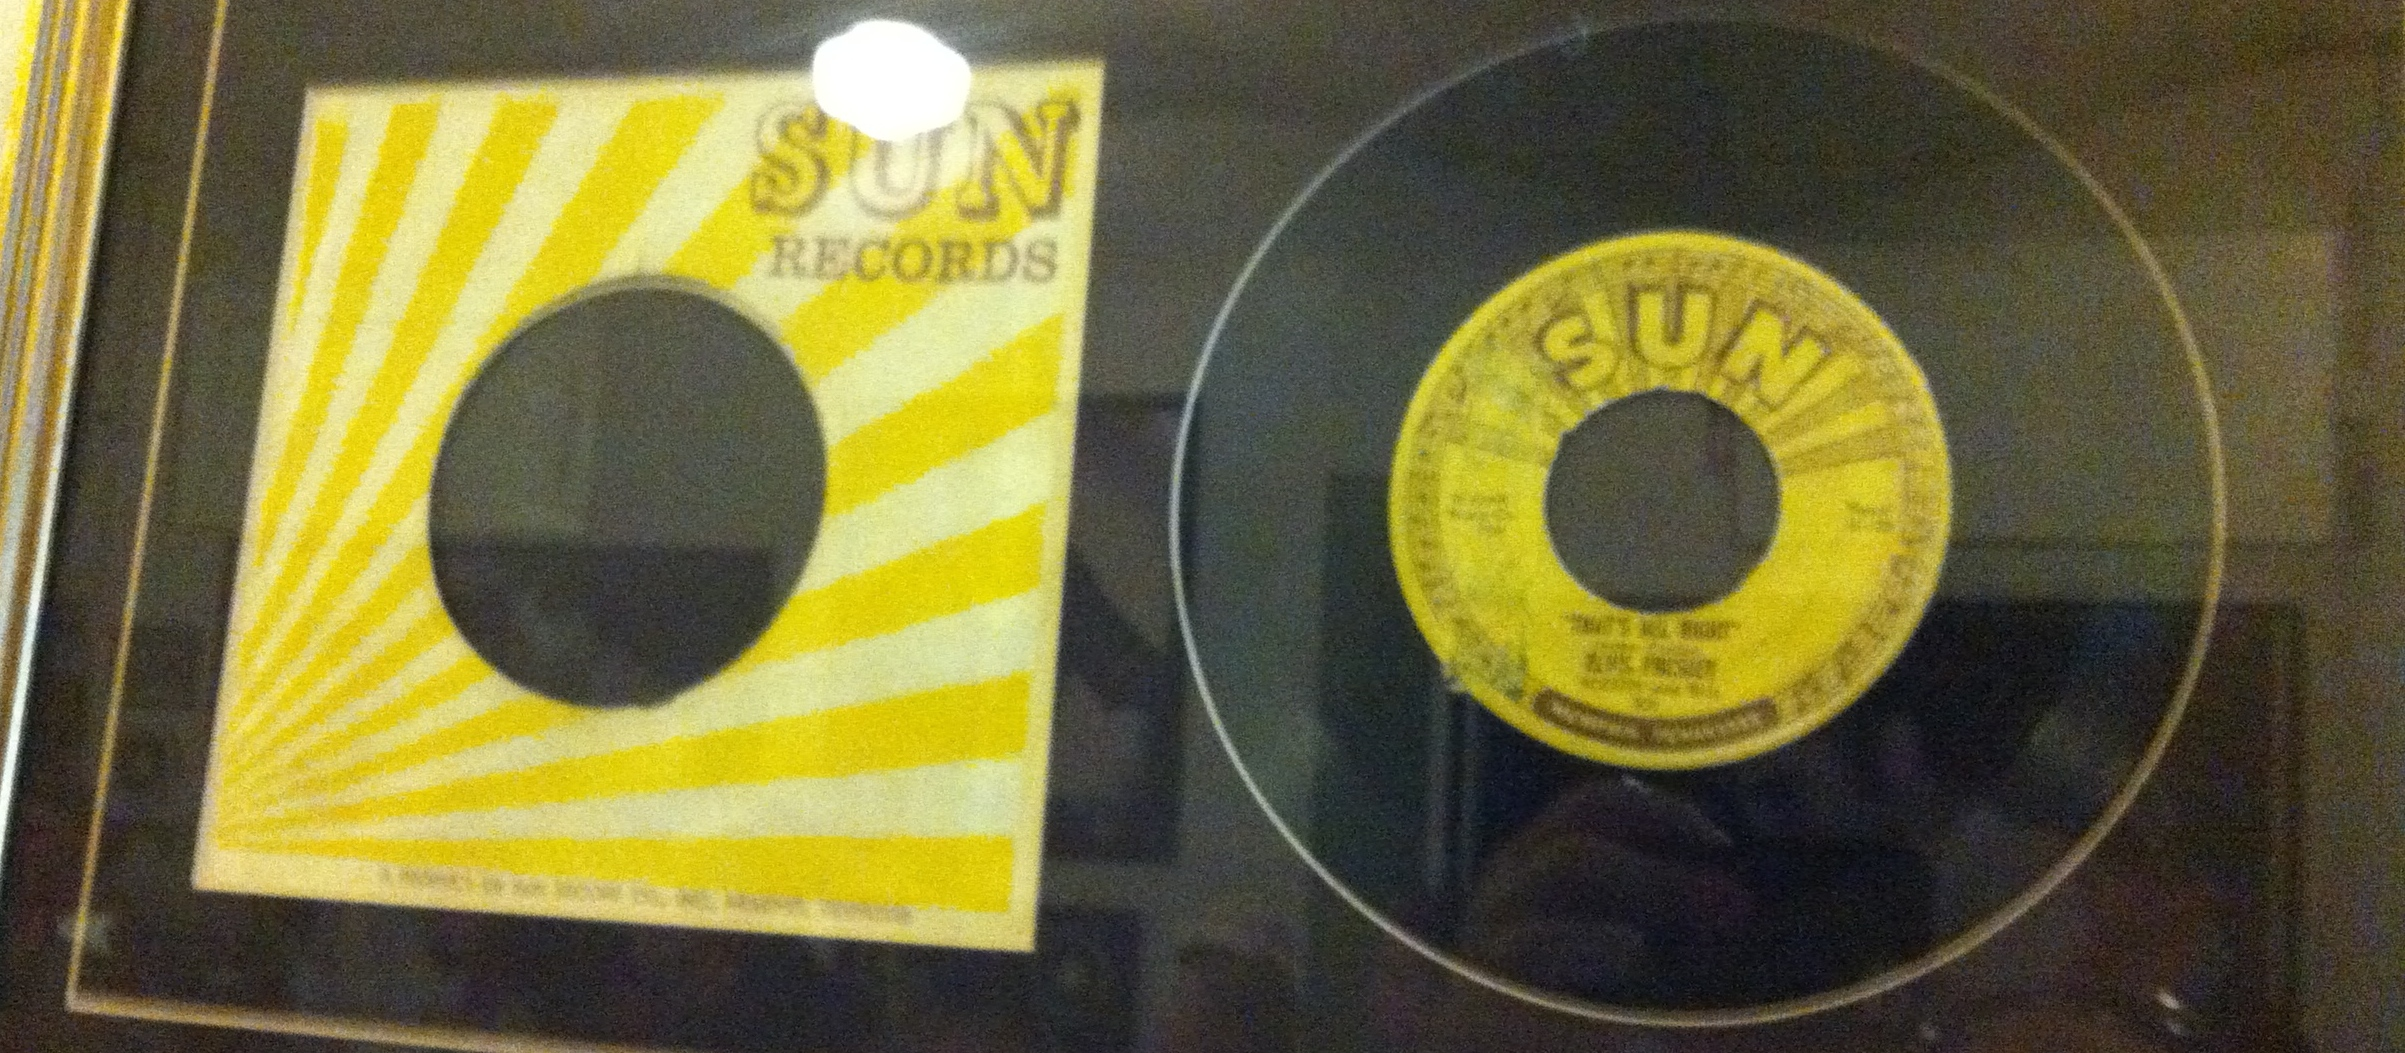 """Elvis Presley's first hit """"That's All Right"""", displayed only a few feet away from where he recorded it."""